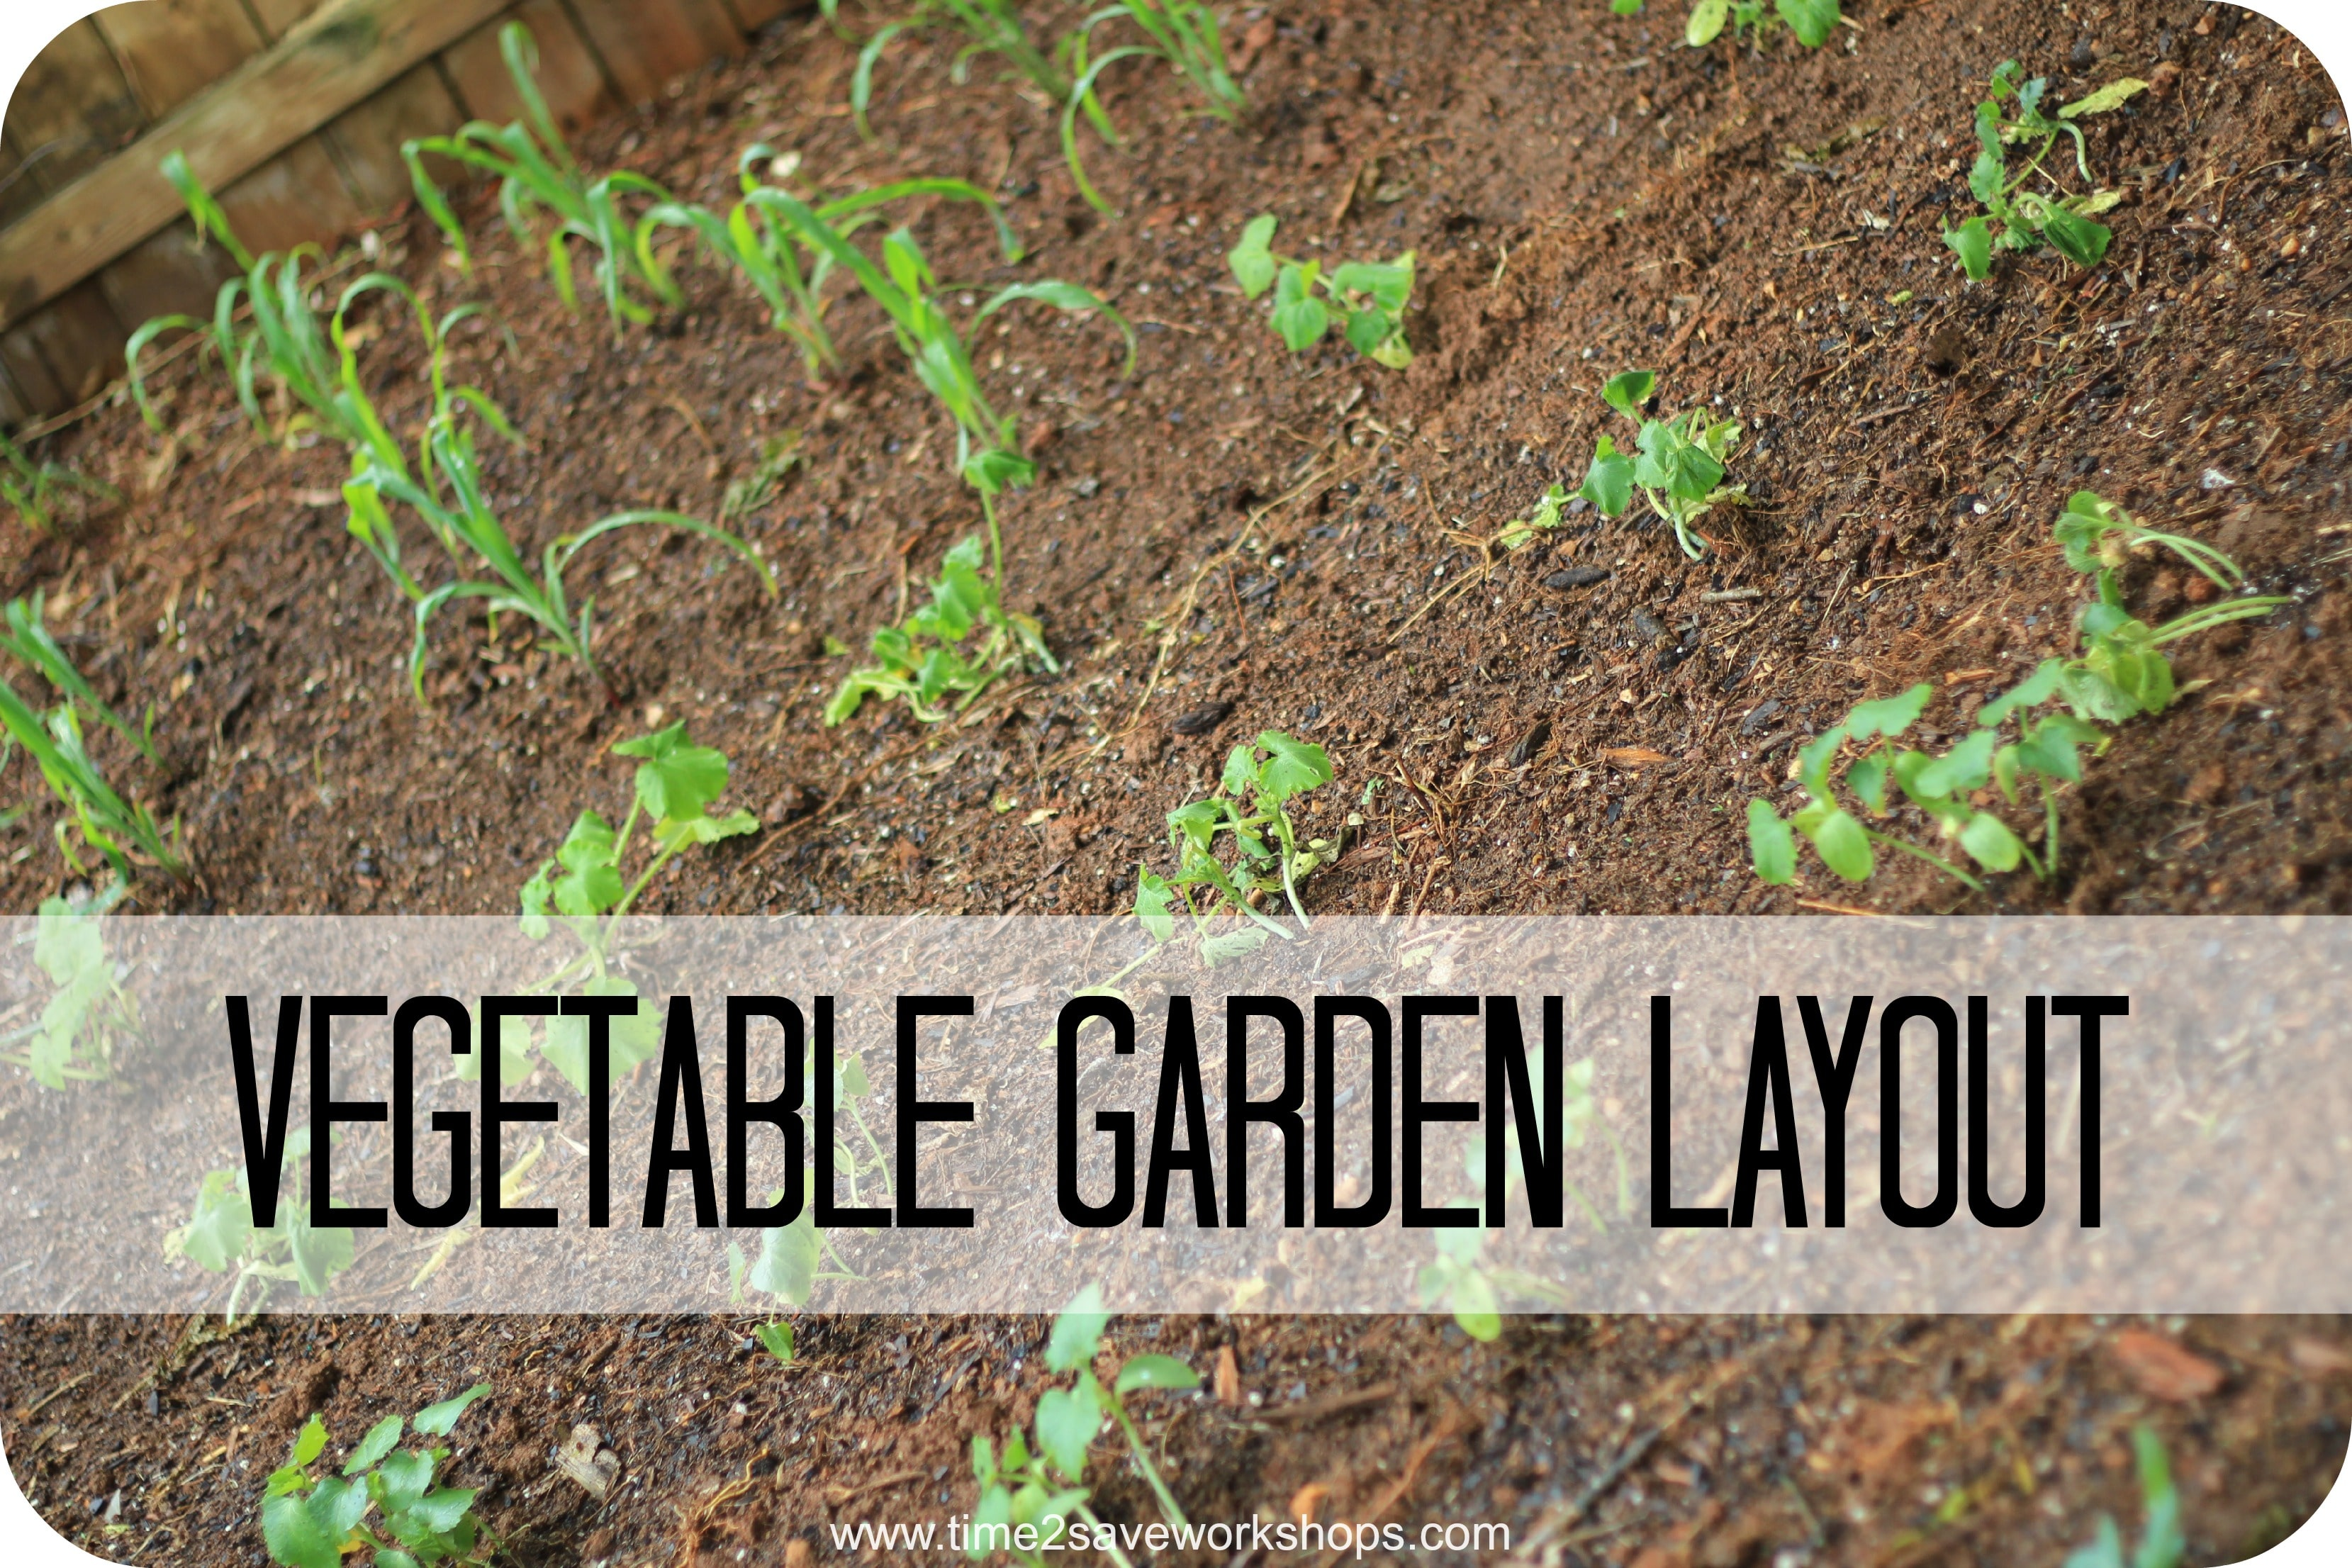 How to lay out a garden home vegetable garden layout food for Best garden layout